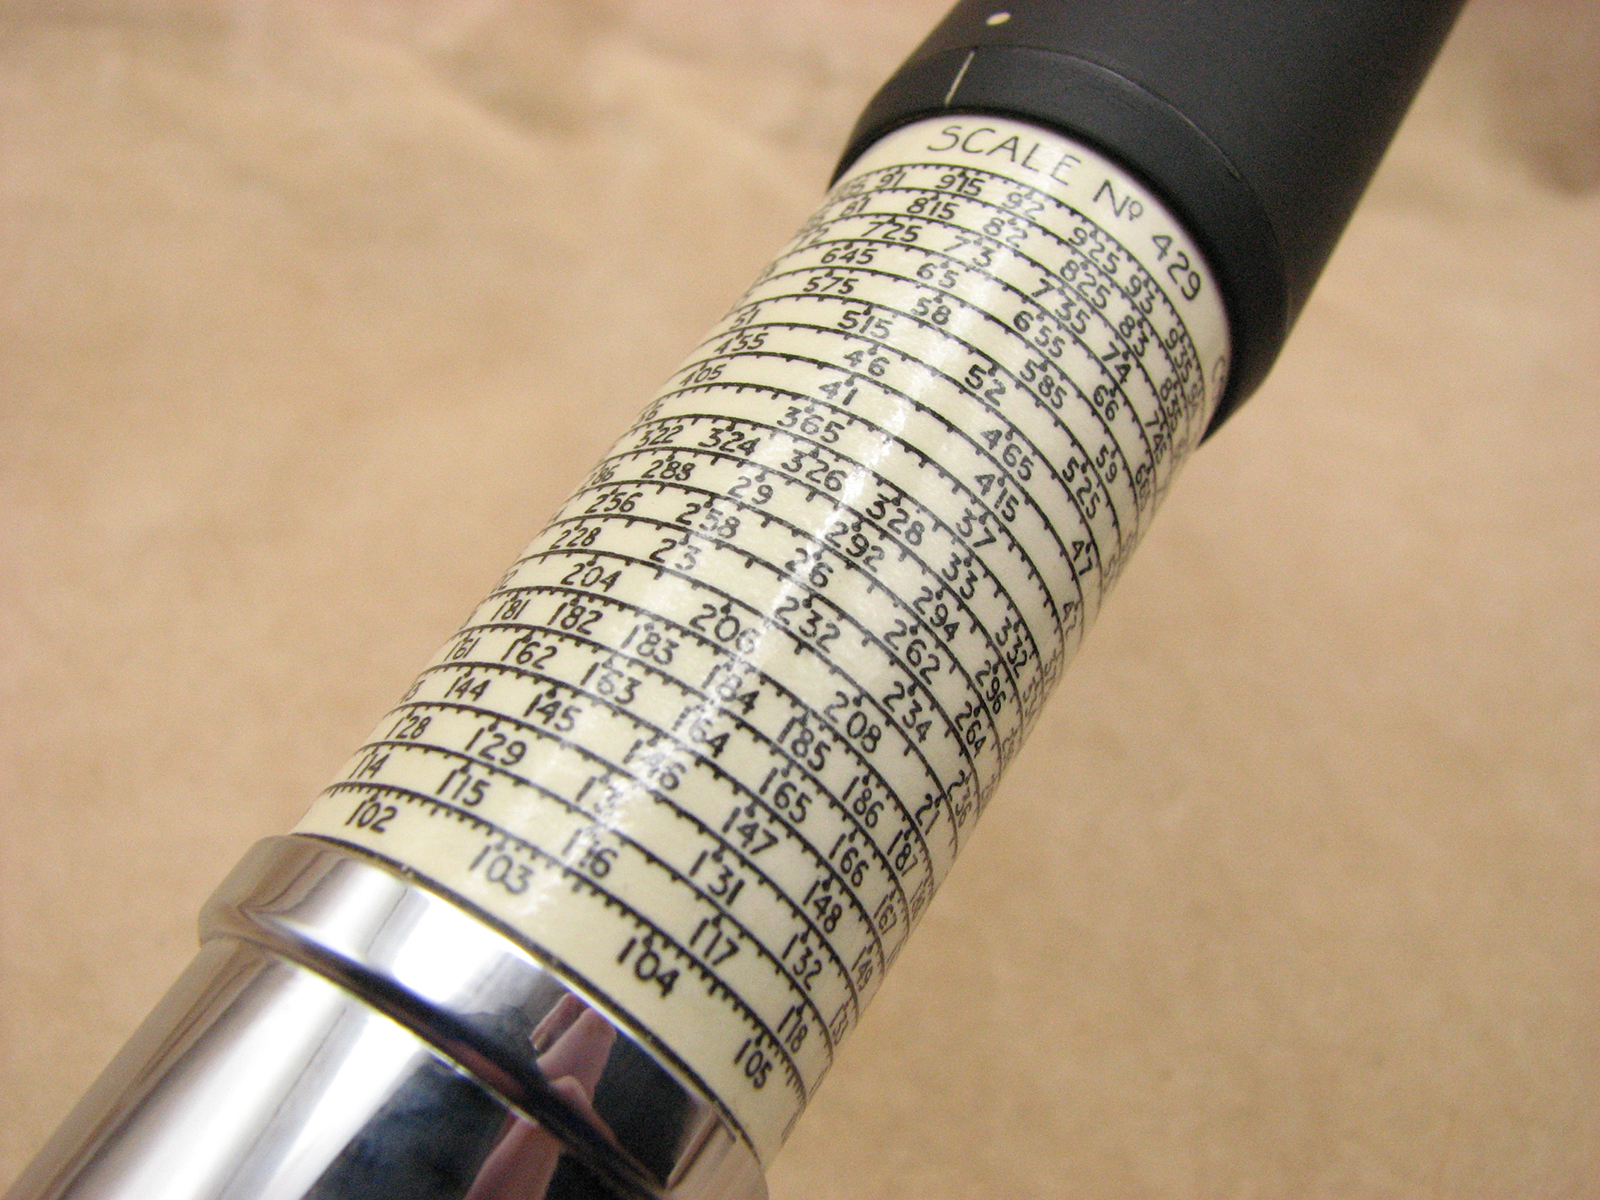 1960's Otis King Model L type C cylindrical slide rule with instructions